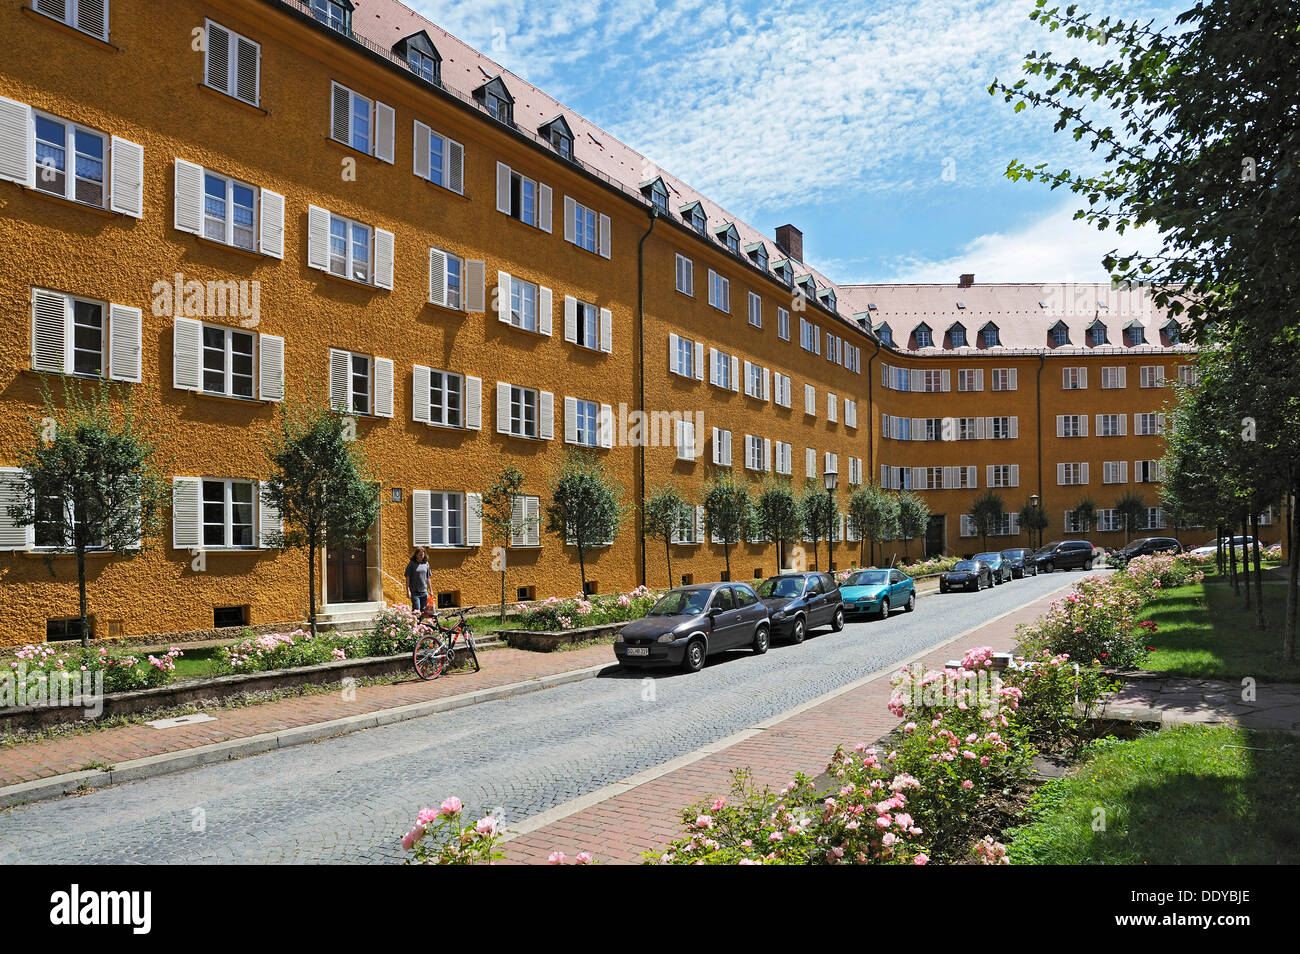 Borstei, a heritage protected residential area in the district of Moosach, Munich, Bavaria - Stock Image